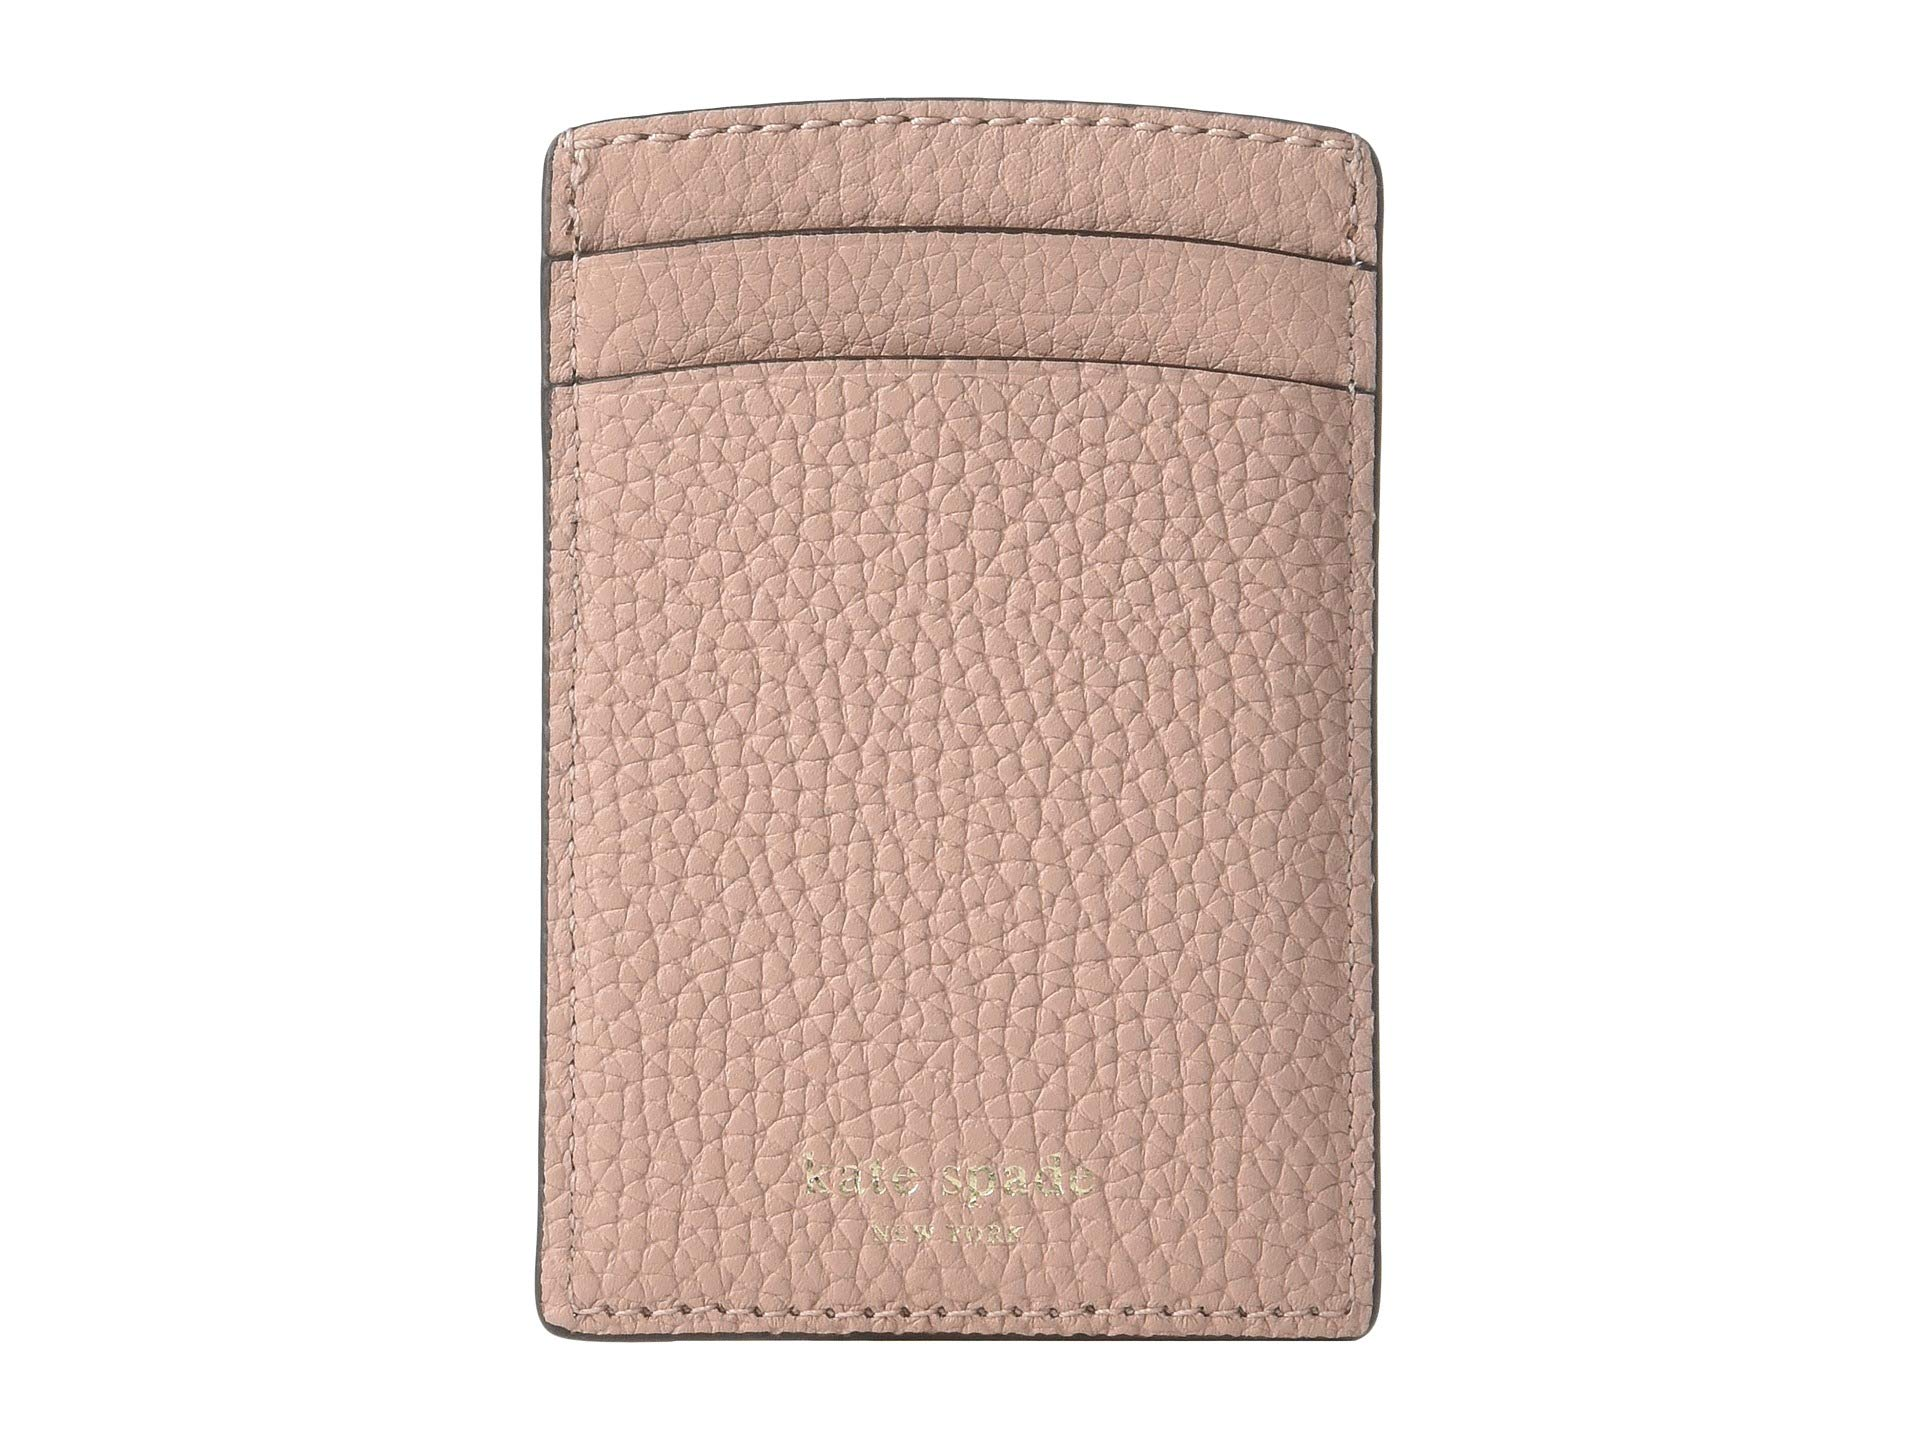 Kate Spade New York Women's Polly Card Holder, Flapper Pink, One Size